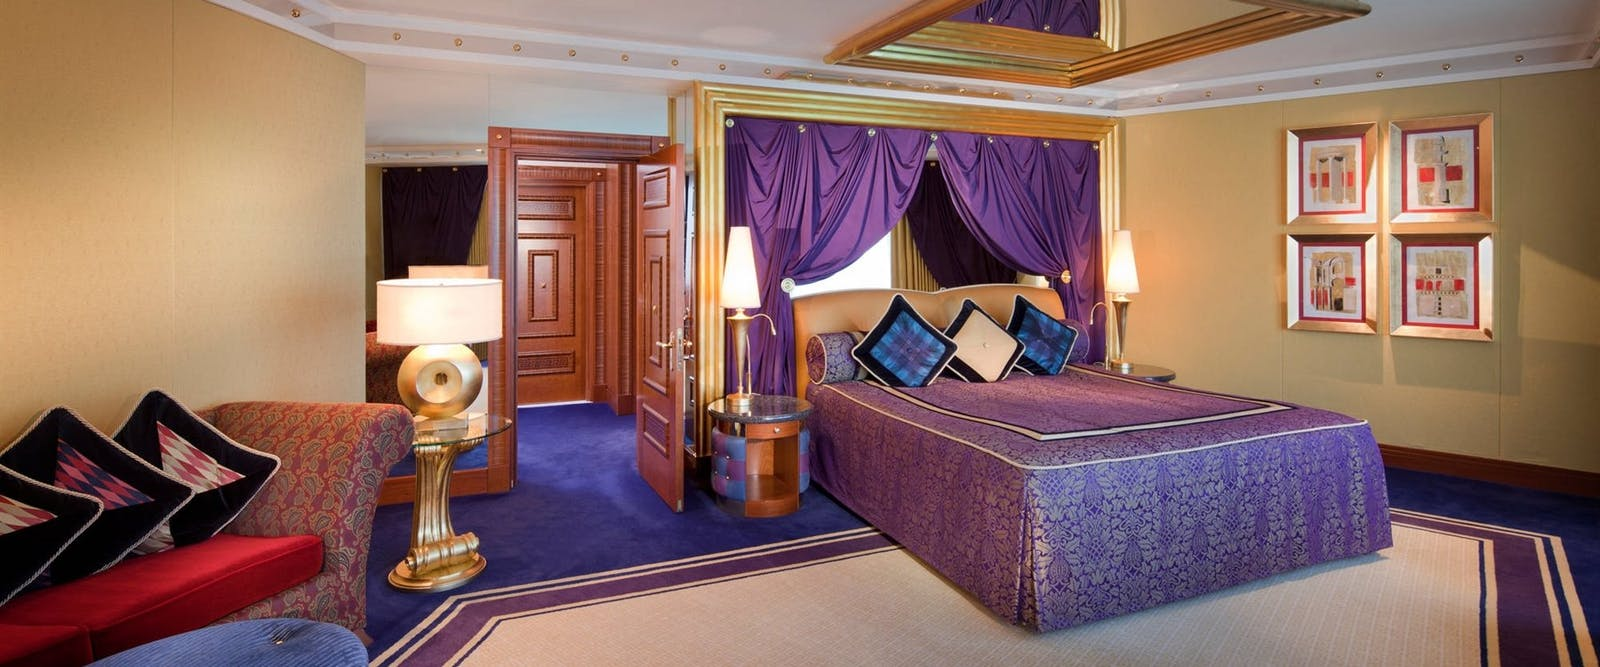 One bedroom deluxe suite at Burj Al Arab, Dubai